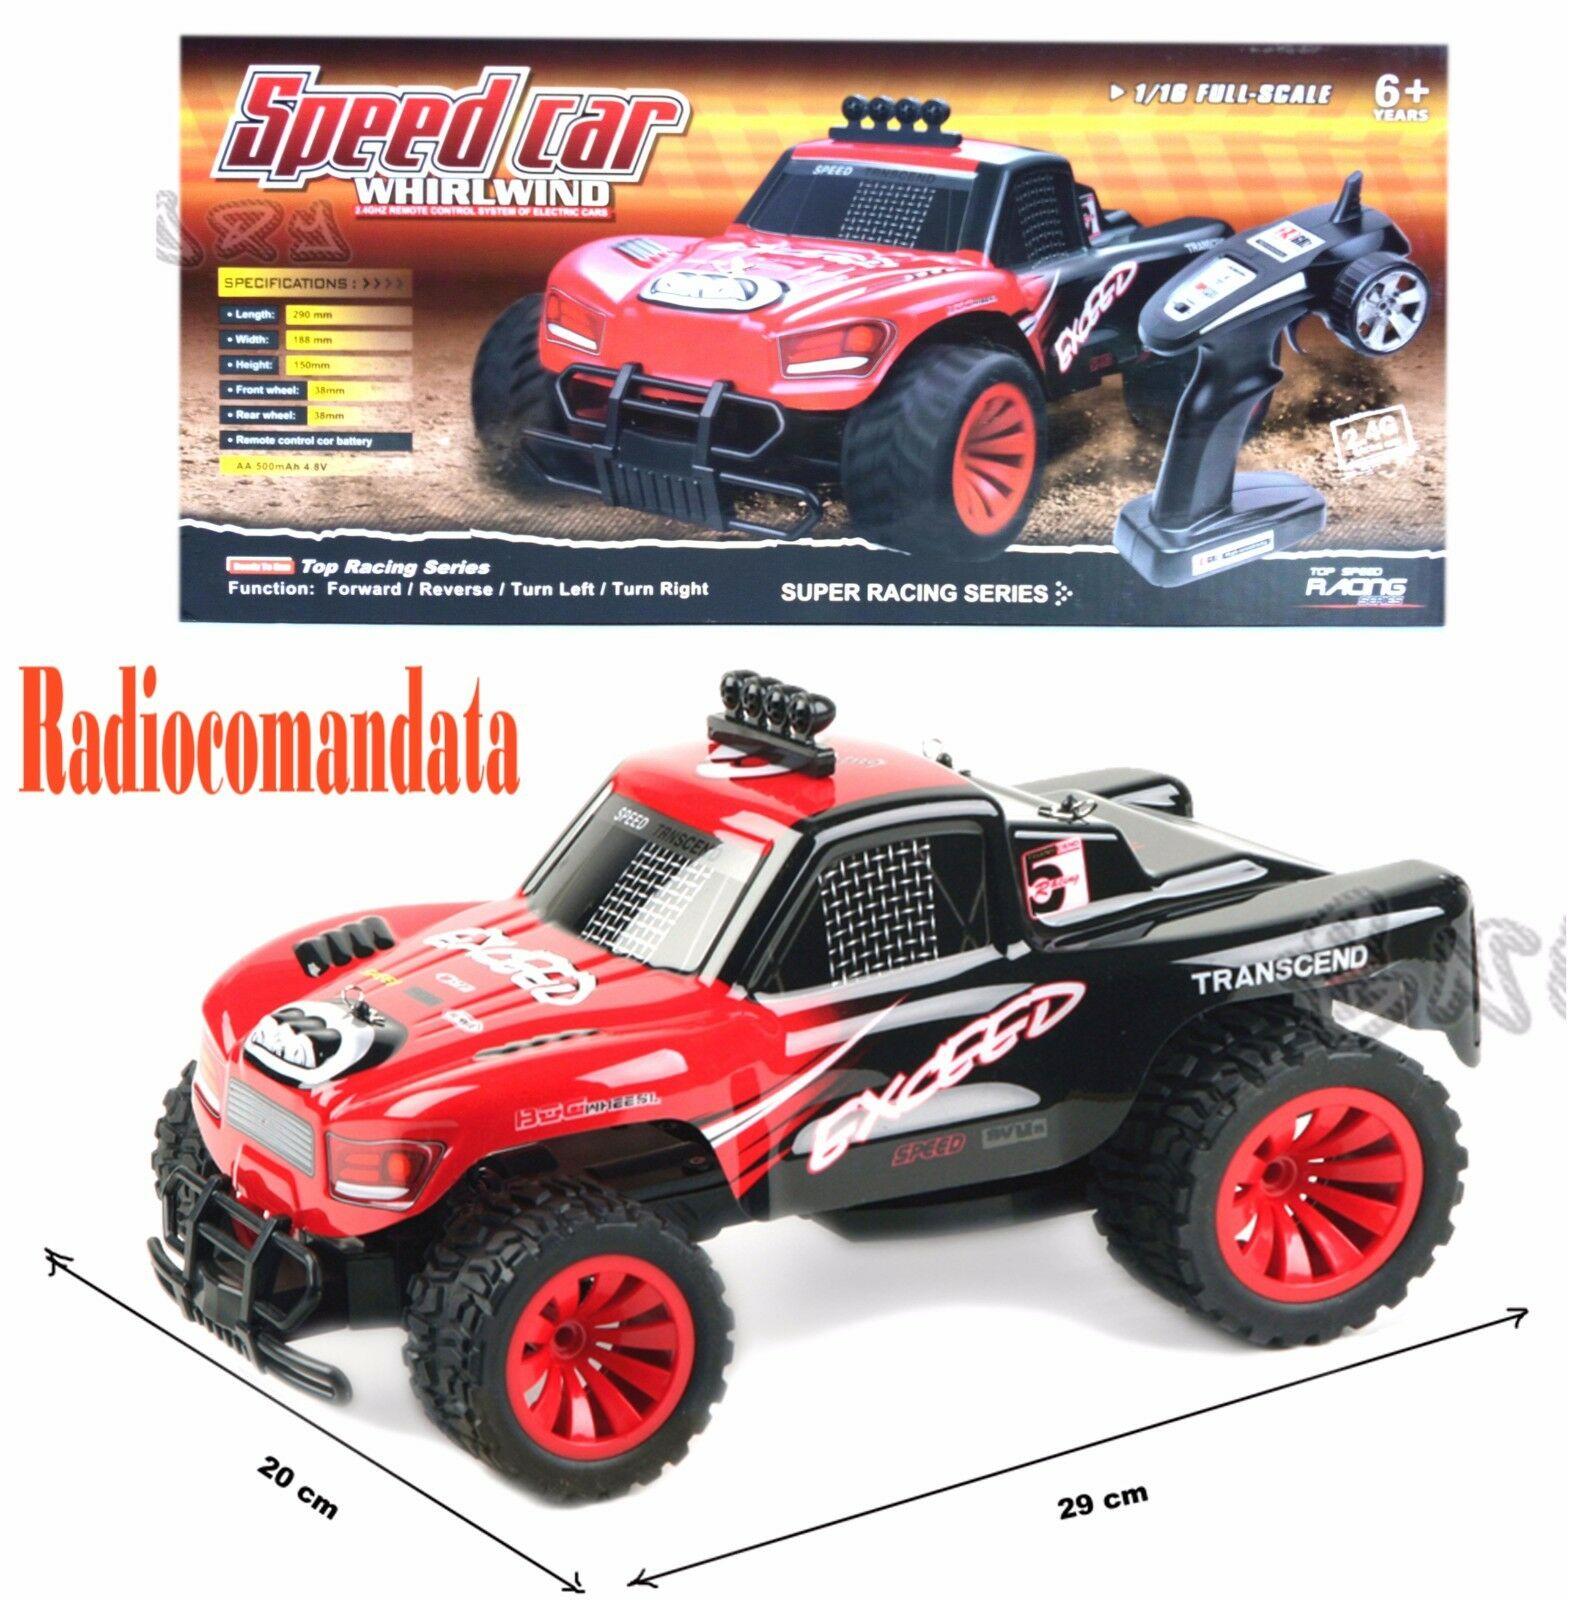 JEEP CROSS-COUNTRY REMOTE-CONTROLLED CAR REMOTE CONTROLLED MA-55128 RED